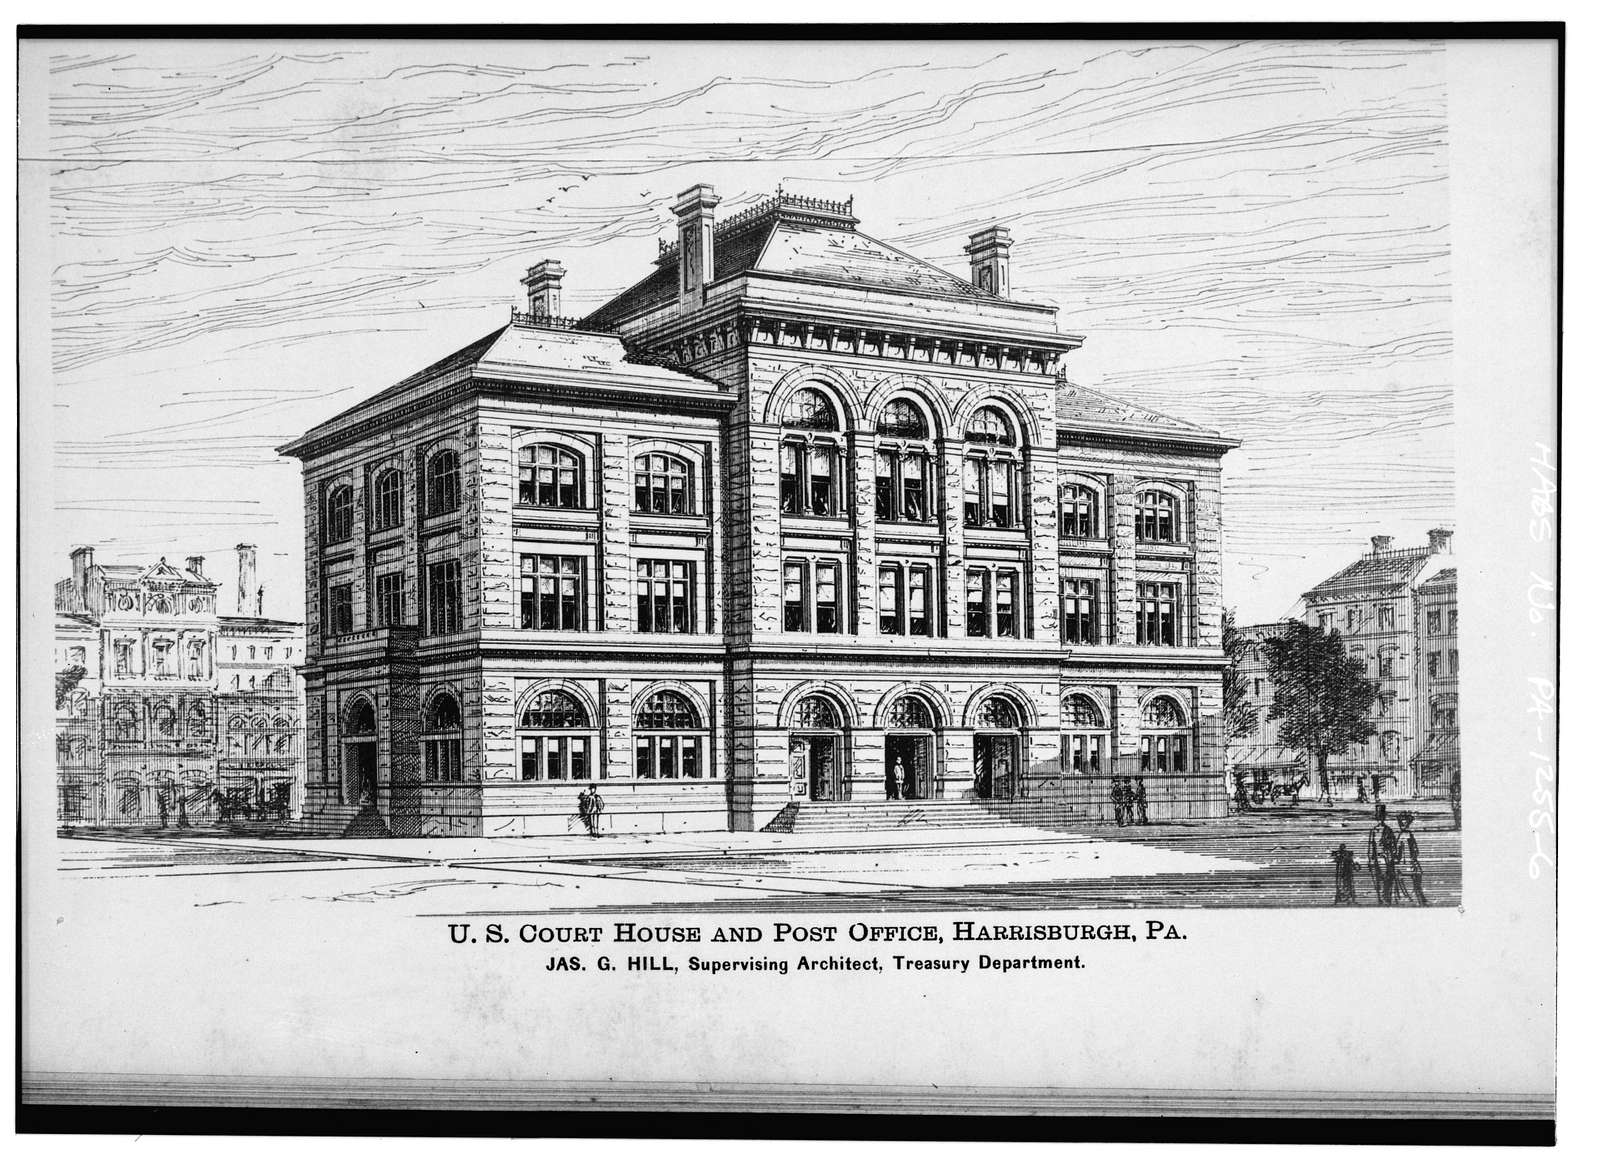 United States Post Office & Courthouse, Third & Walnut Streets, Harrisburg, Dauphin County, PA